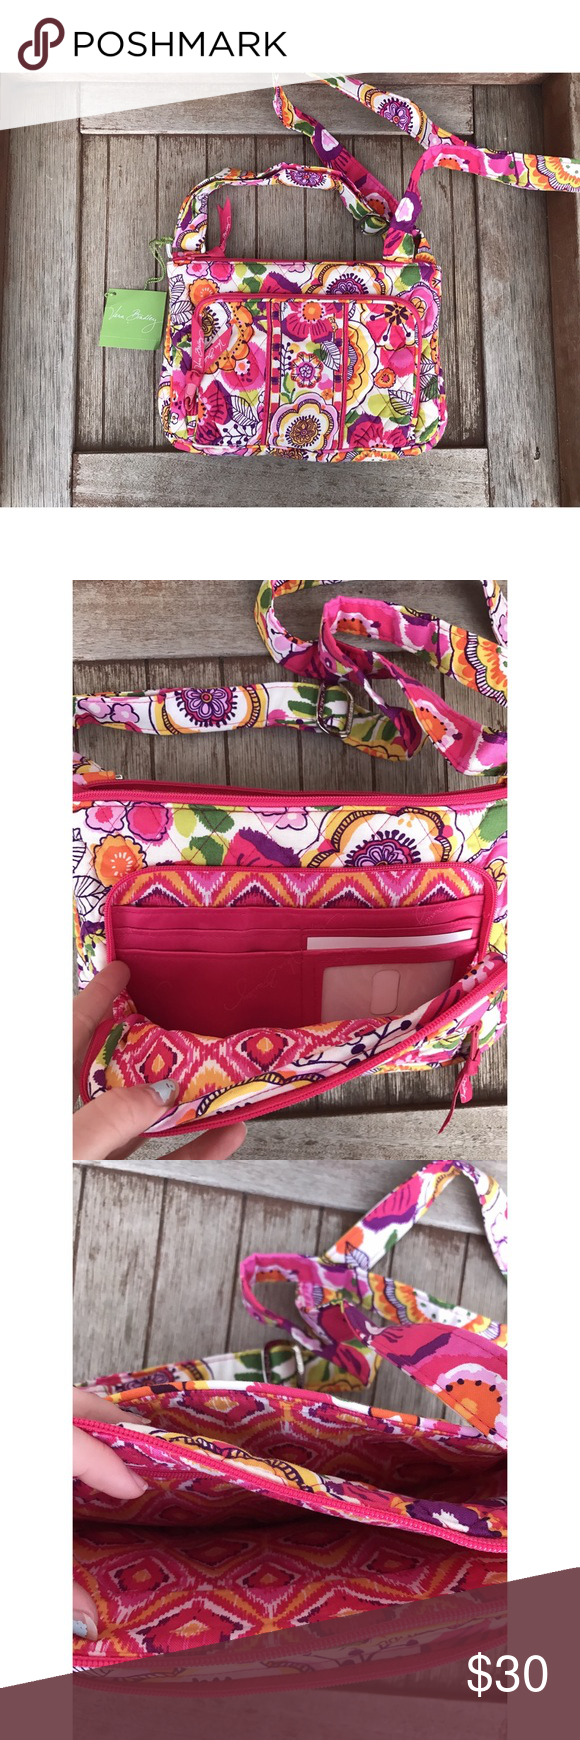 Vera Bradley Cross-body This gorgeous print is called Clementine and for good reason! It is a charming pop of color with the perfect boho flare. The colors complement each other beautifully! This little crossover bag is brand new with tags attached. It has no flaws or imperfections. It has a main compartment to keep everything you need and several separate pockets too. I have a matching wallet in my closet as well. If you are interested in purchasing both I can offer a great discount! Vera…